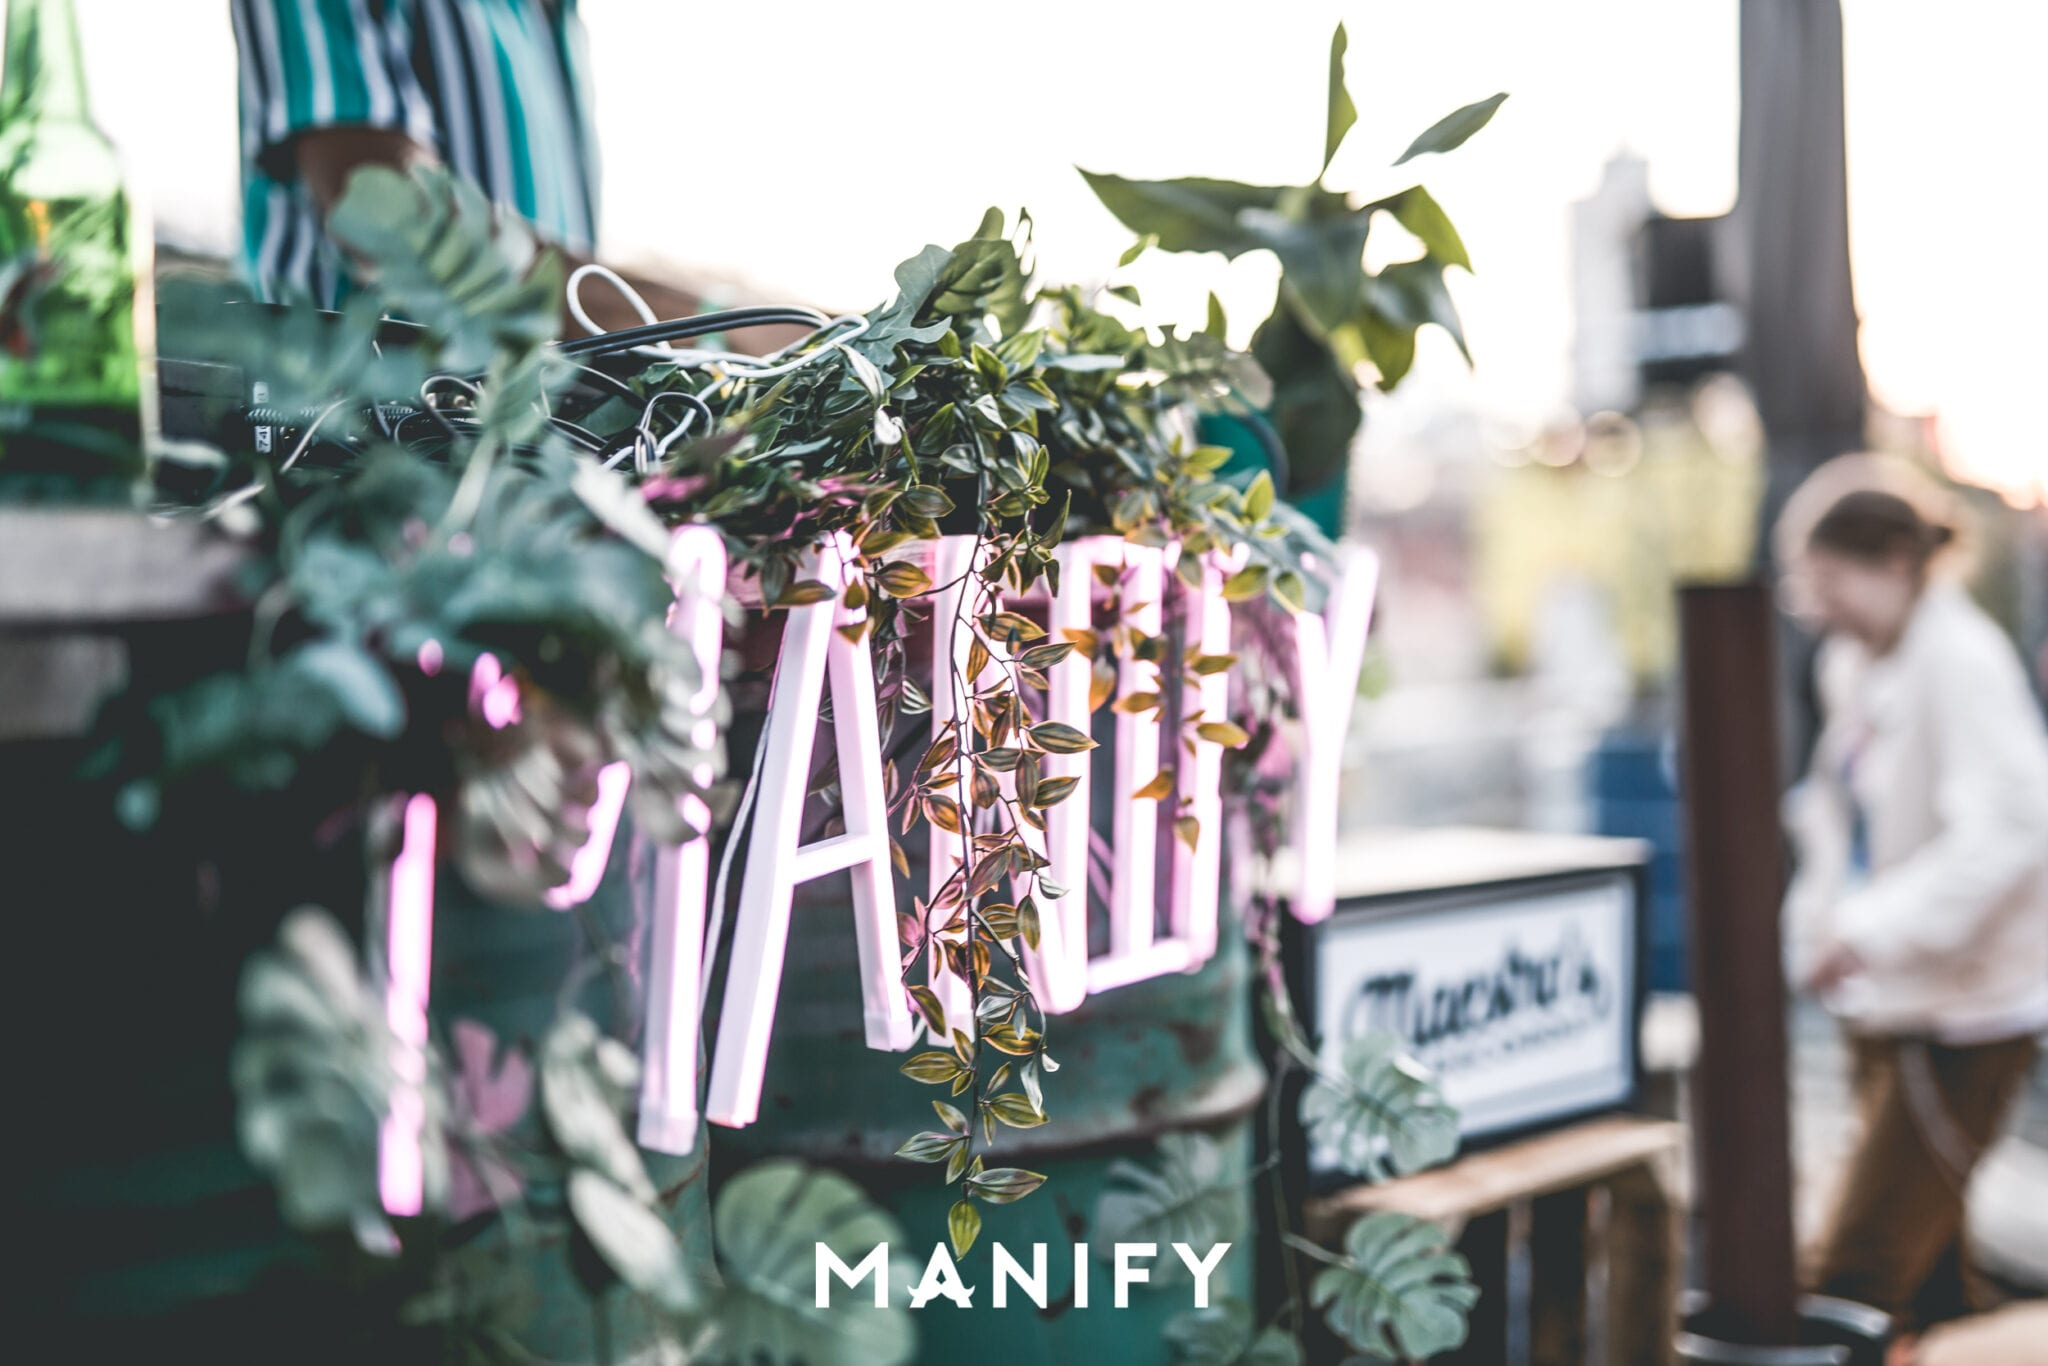 Manify_Out_of_office_RAW_13-09-WM-55-manify